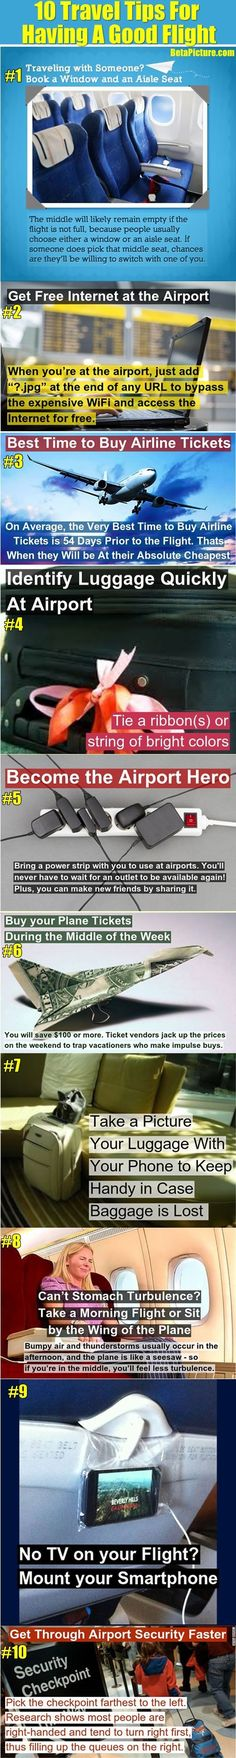 Helpful Life Hack Tips, Let's Make Life Great Again! 10 Travel Tips That You Must Know To Have A Good Flight. Loving that power strip idea! Such a good Travel Tips That You Must Know To Have A Good Flight. Loving that power strip idea! Travel Info, Travel Packing, Time Travel, Places To Travel, Travel Hacks, Packing Tips, Air Travel Tips, Travel Things, Travel News